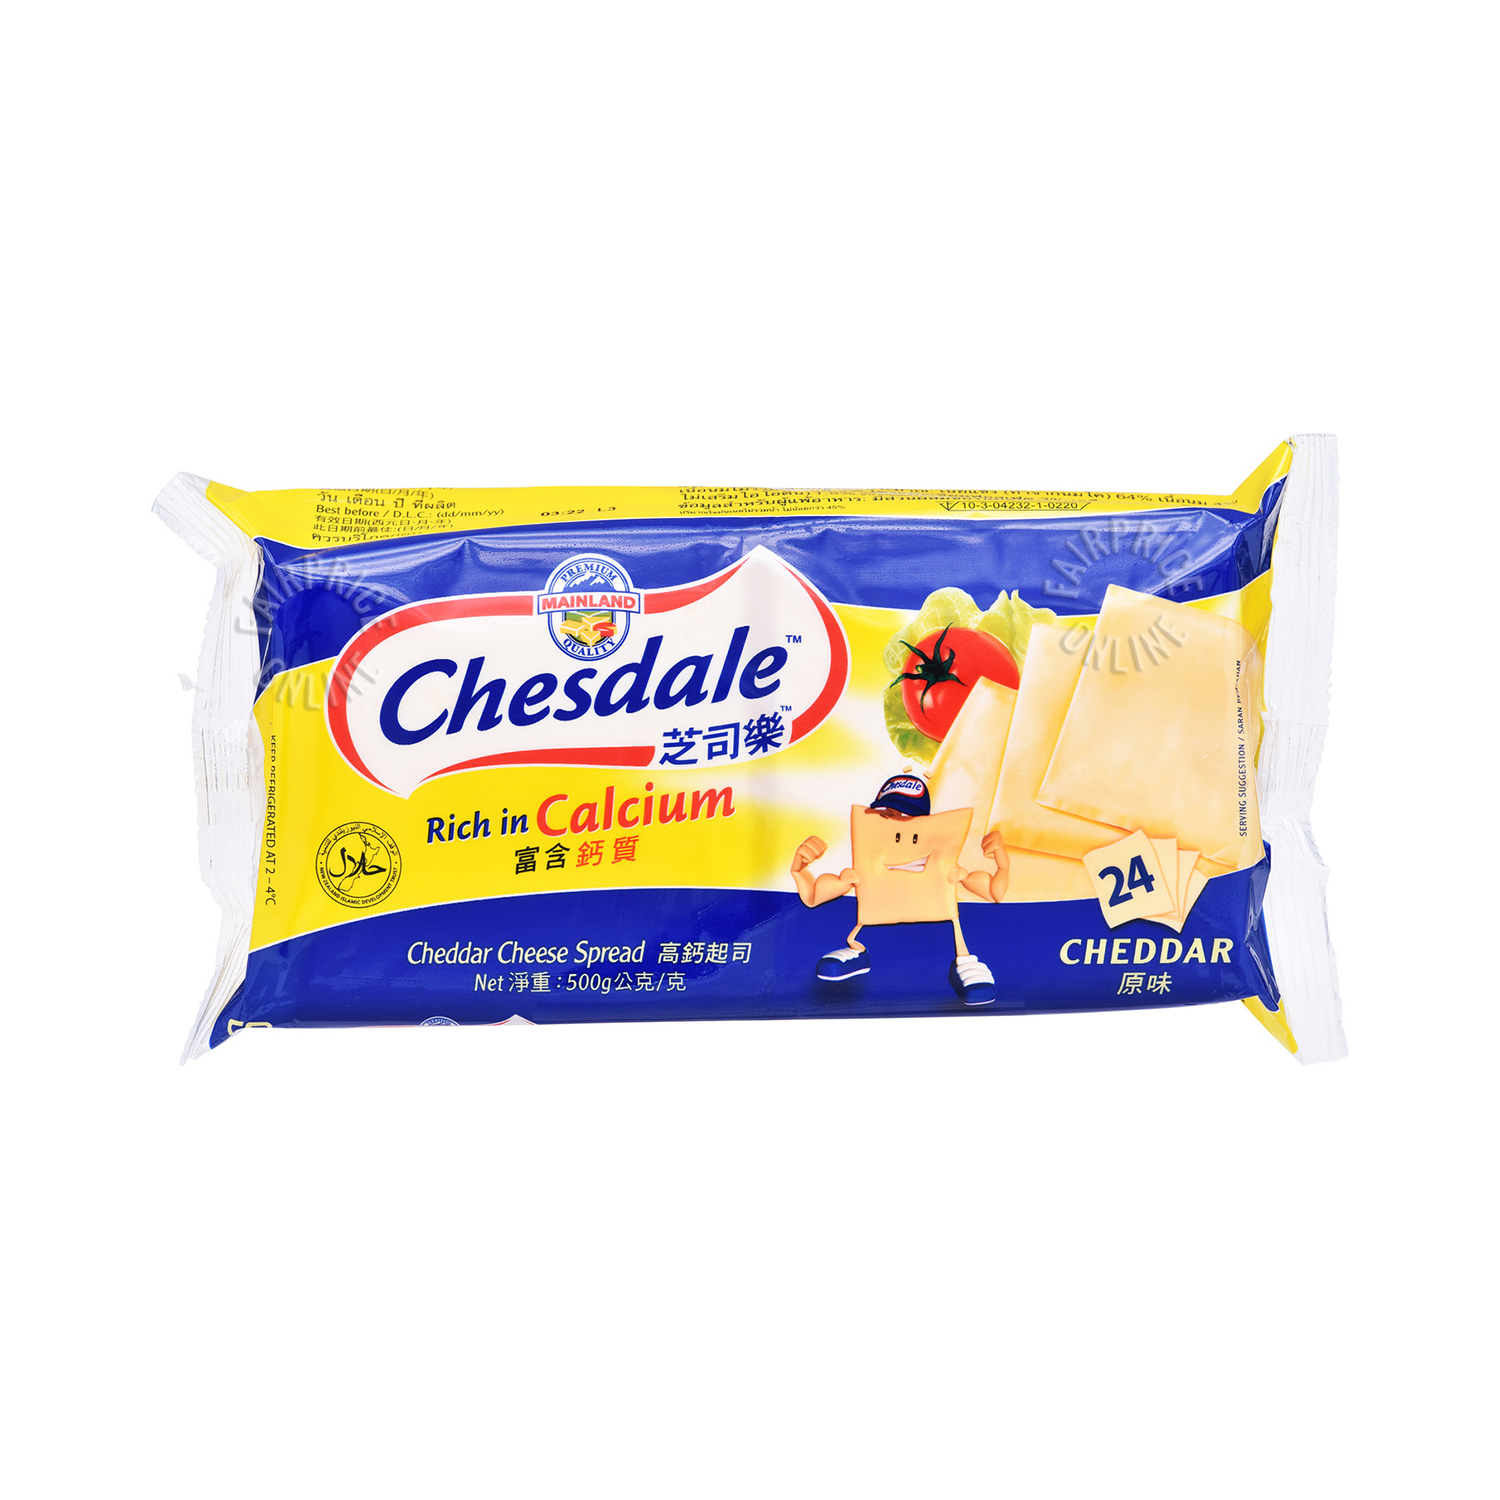 Chesdale Processed Cheese 24'S 500Gm